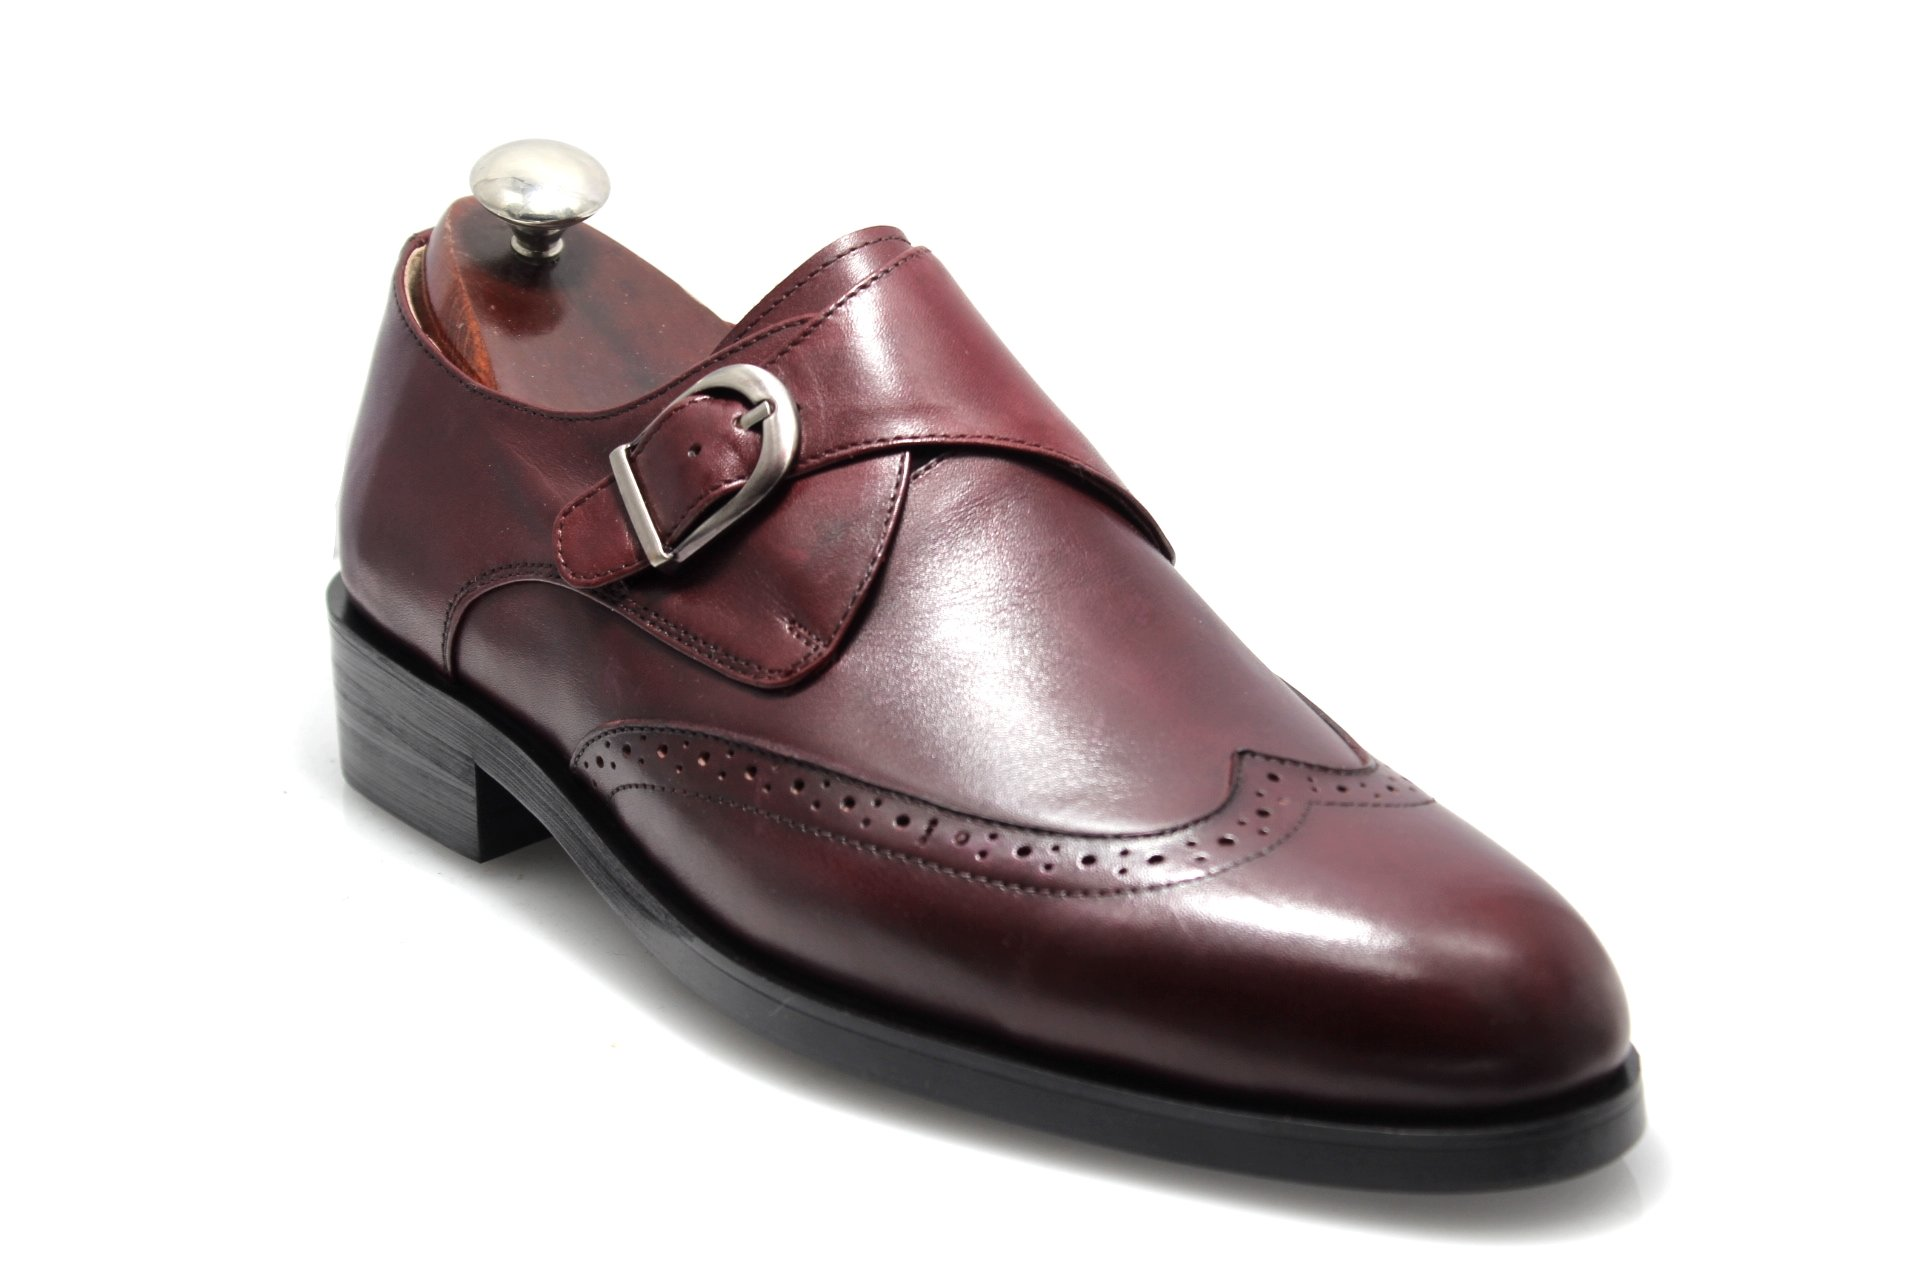 Mens Smythe & Digby Cordovan Leather Single Monk Strap Wingtip Dress Shoes (11)